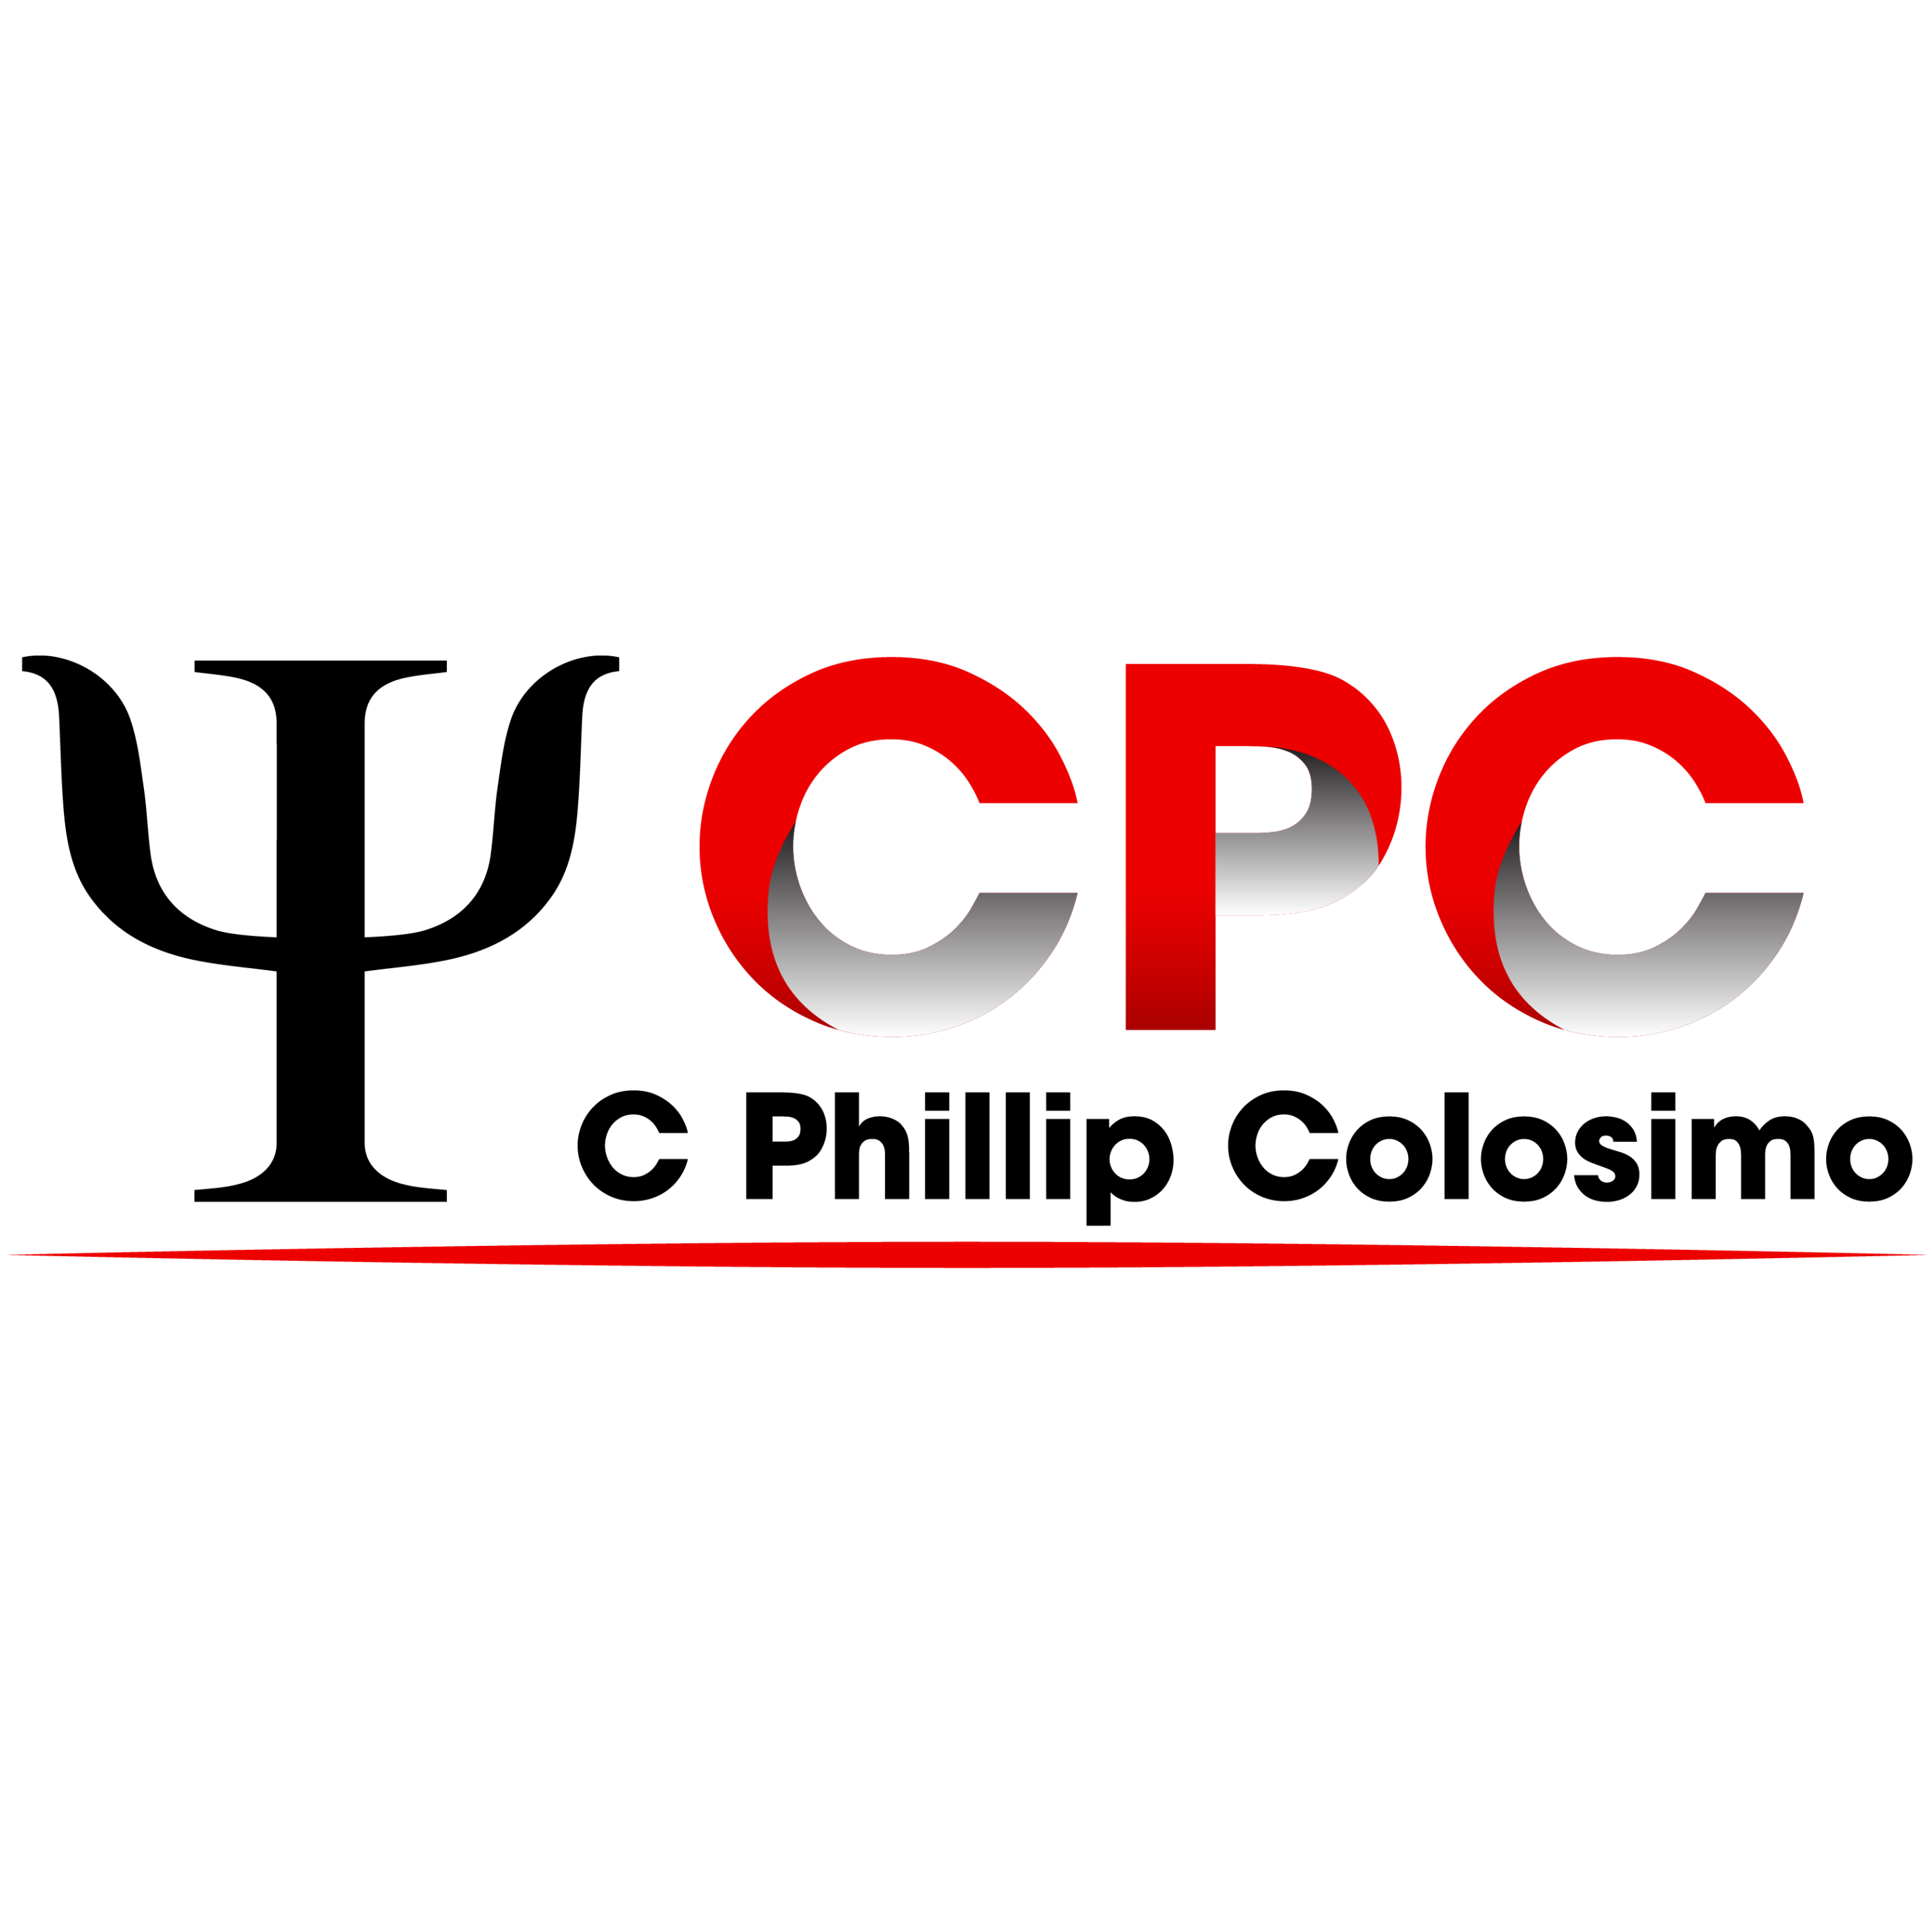 C. Phillip Colosimo Ph.D. & Assoc, Ltd